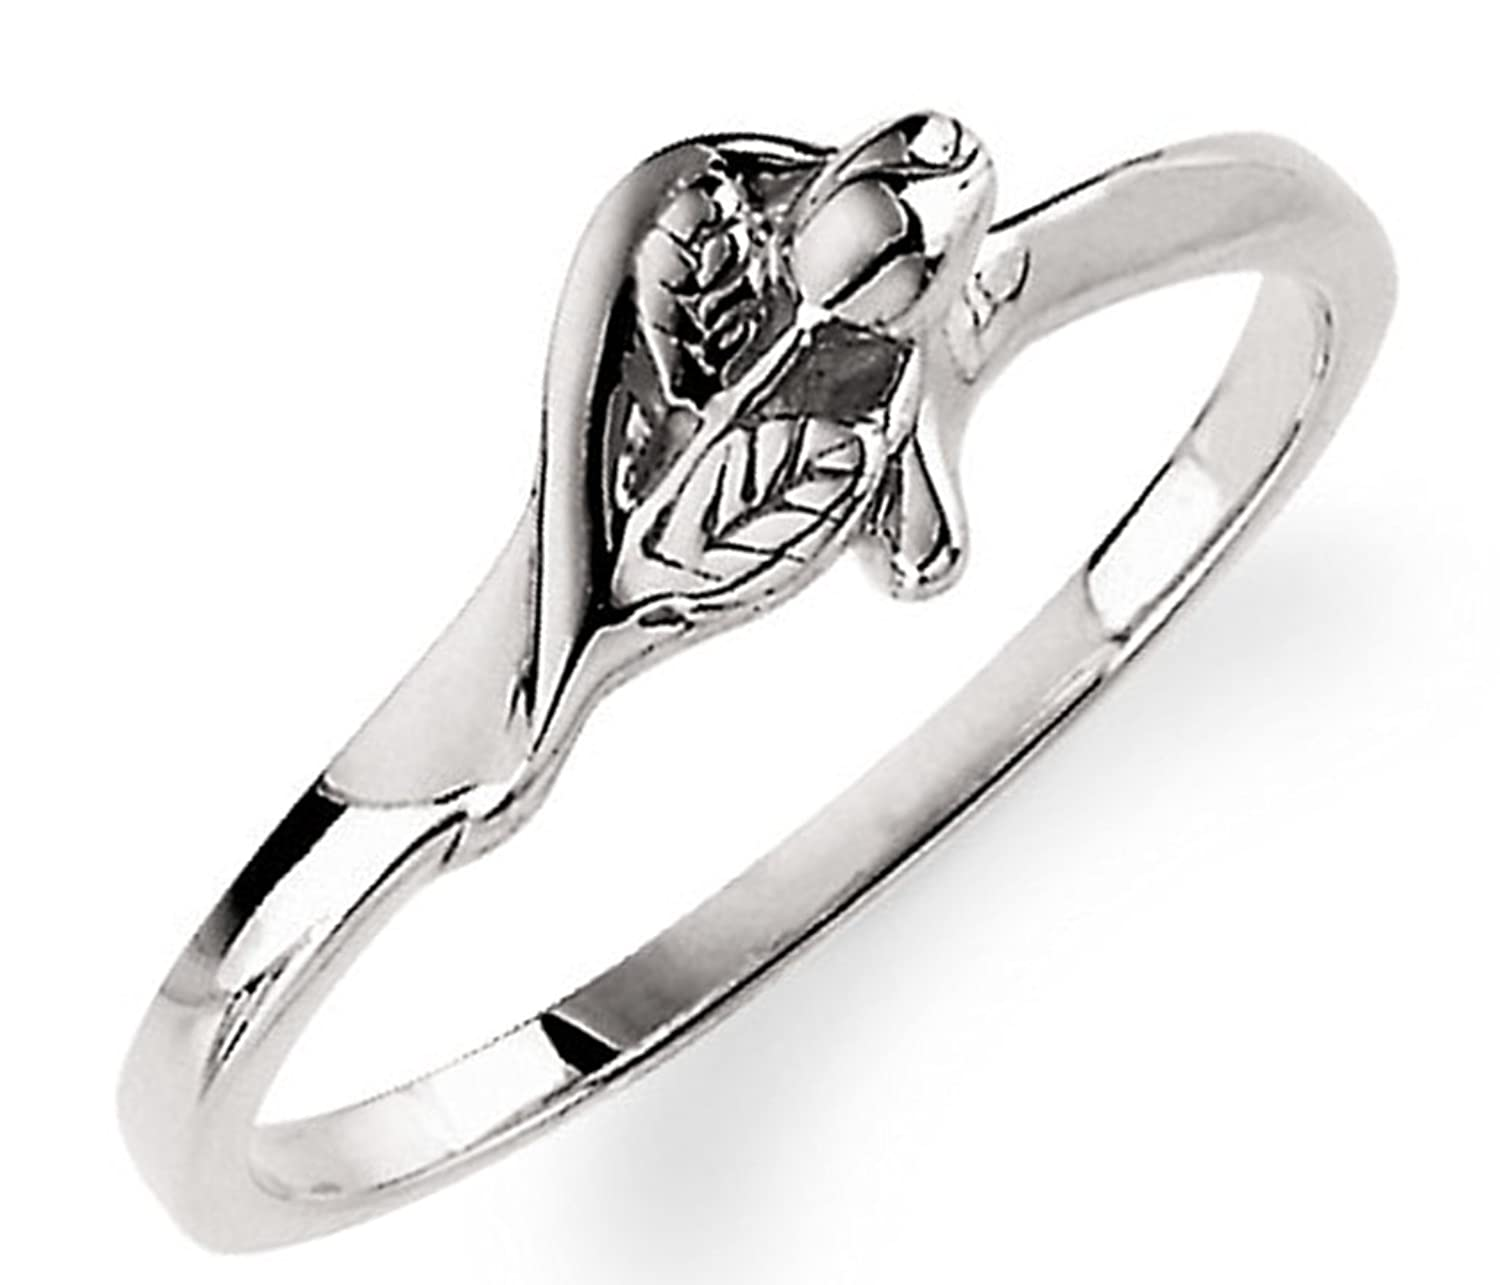 'Unblossomed Rose' Sterling Silver Chastity Ring